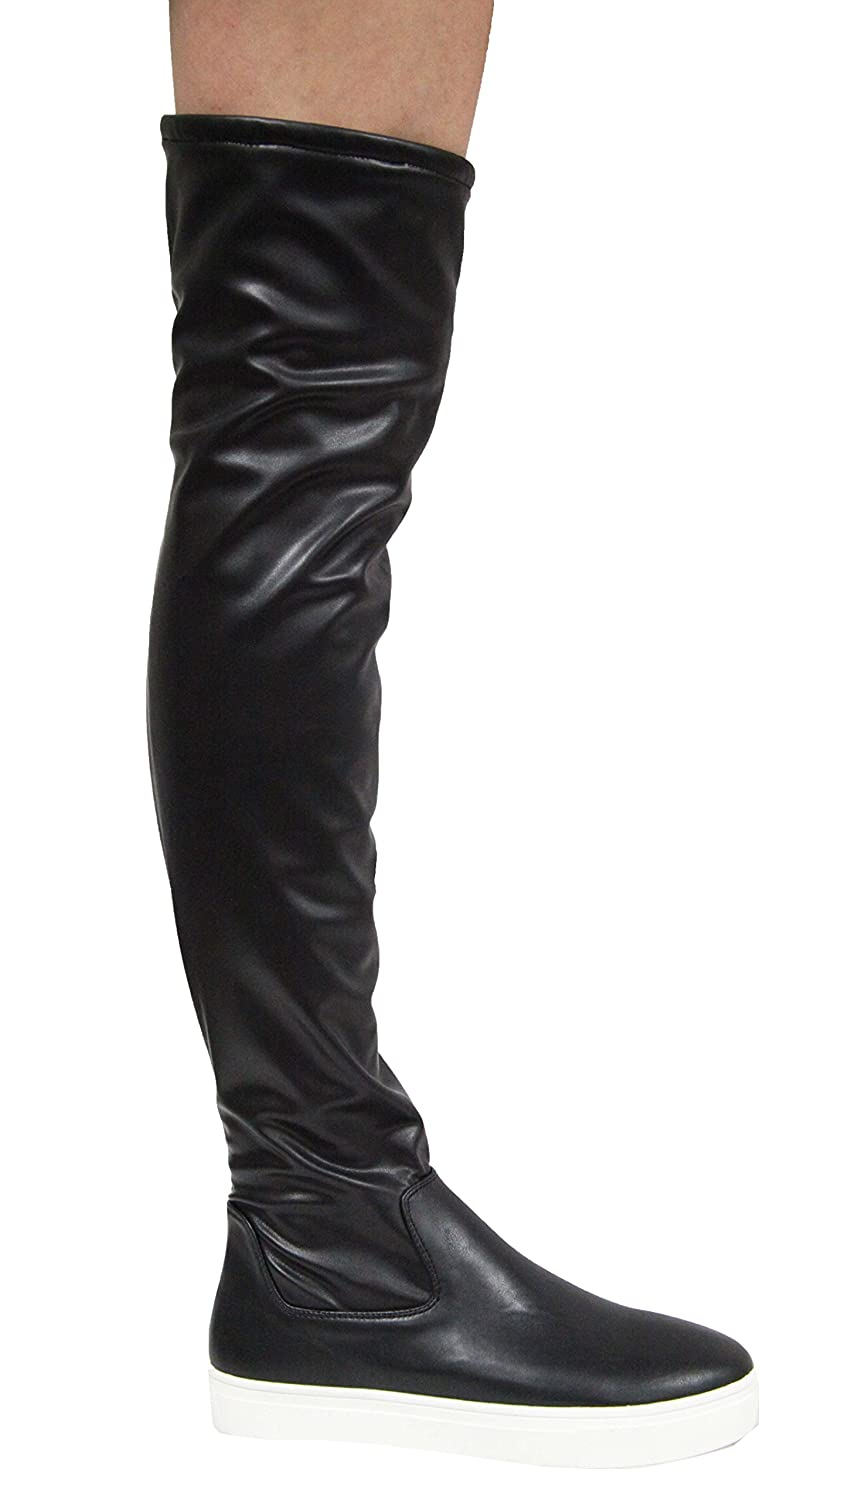 067acb4573c53 CAPE ROBBIN Adelaide-21 Black Vegan Leather White Sneaker Bottom Thigh High  Over The Knee Stretch Boots